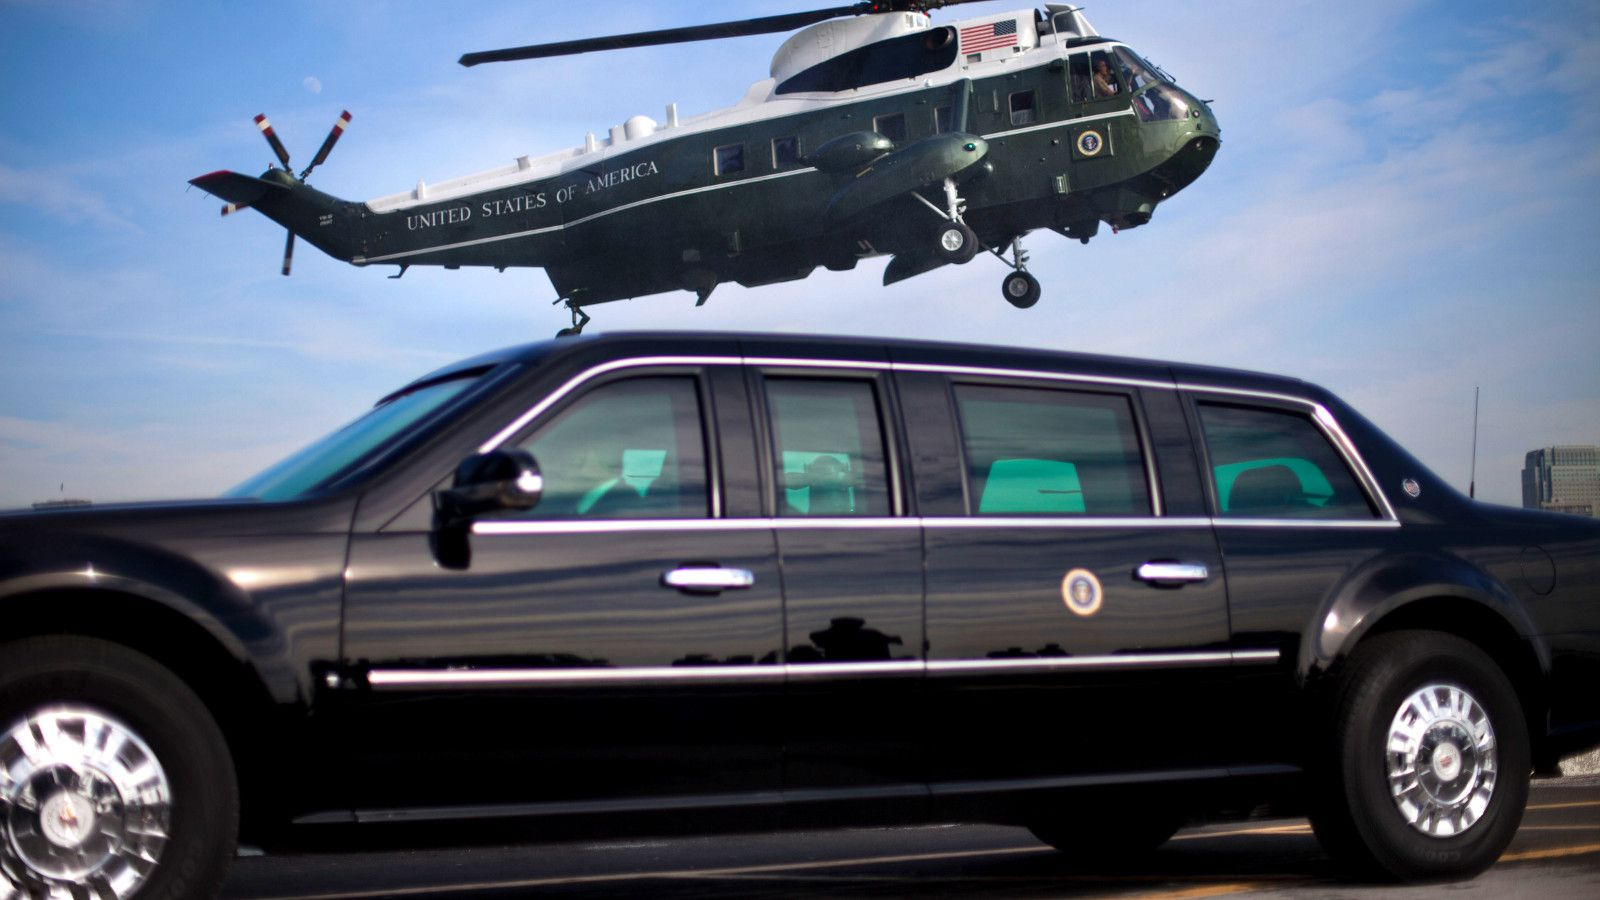 "Marine One helicopter, with President Barack Obama aboard, during landing approach at the Wall Street heliport, Tuesday, March 11, 2014 in New York. Obama traveled to New York to attend a pari of fundraisers for Democrats. Waiting to transport the President is a Secret Service agent sitting inside ""the Beast"", the armored limousine."